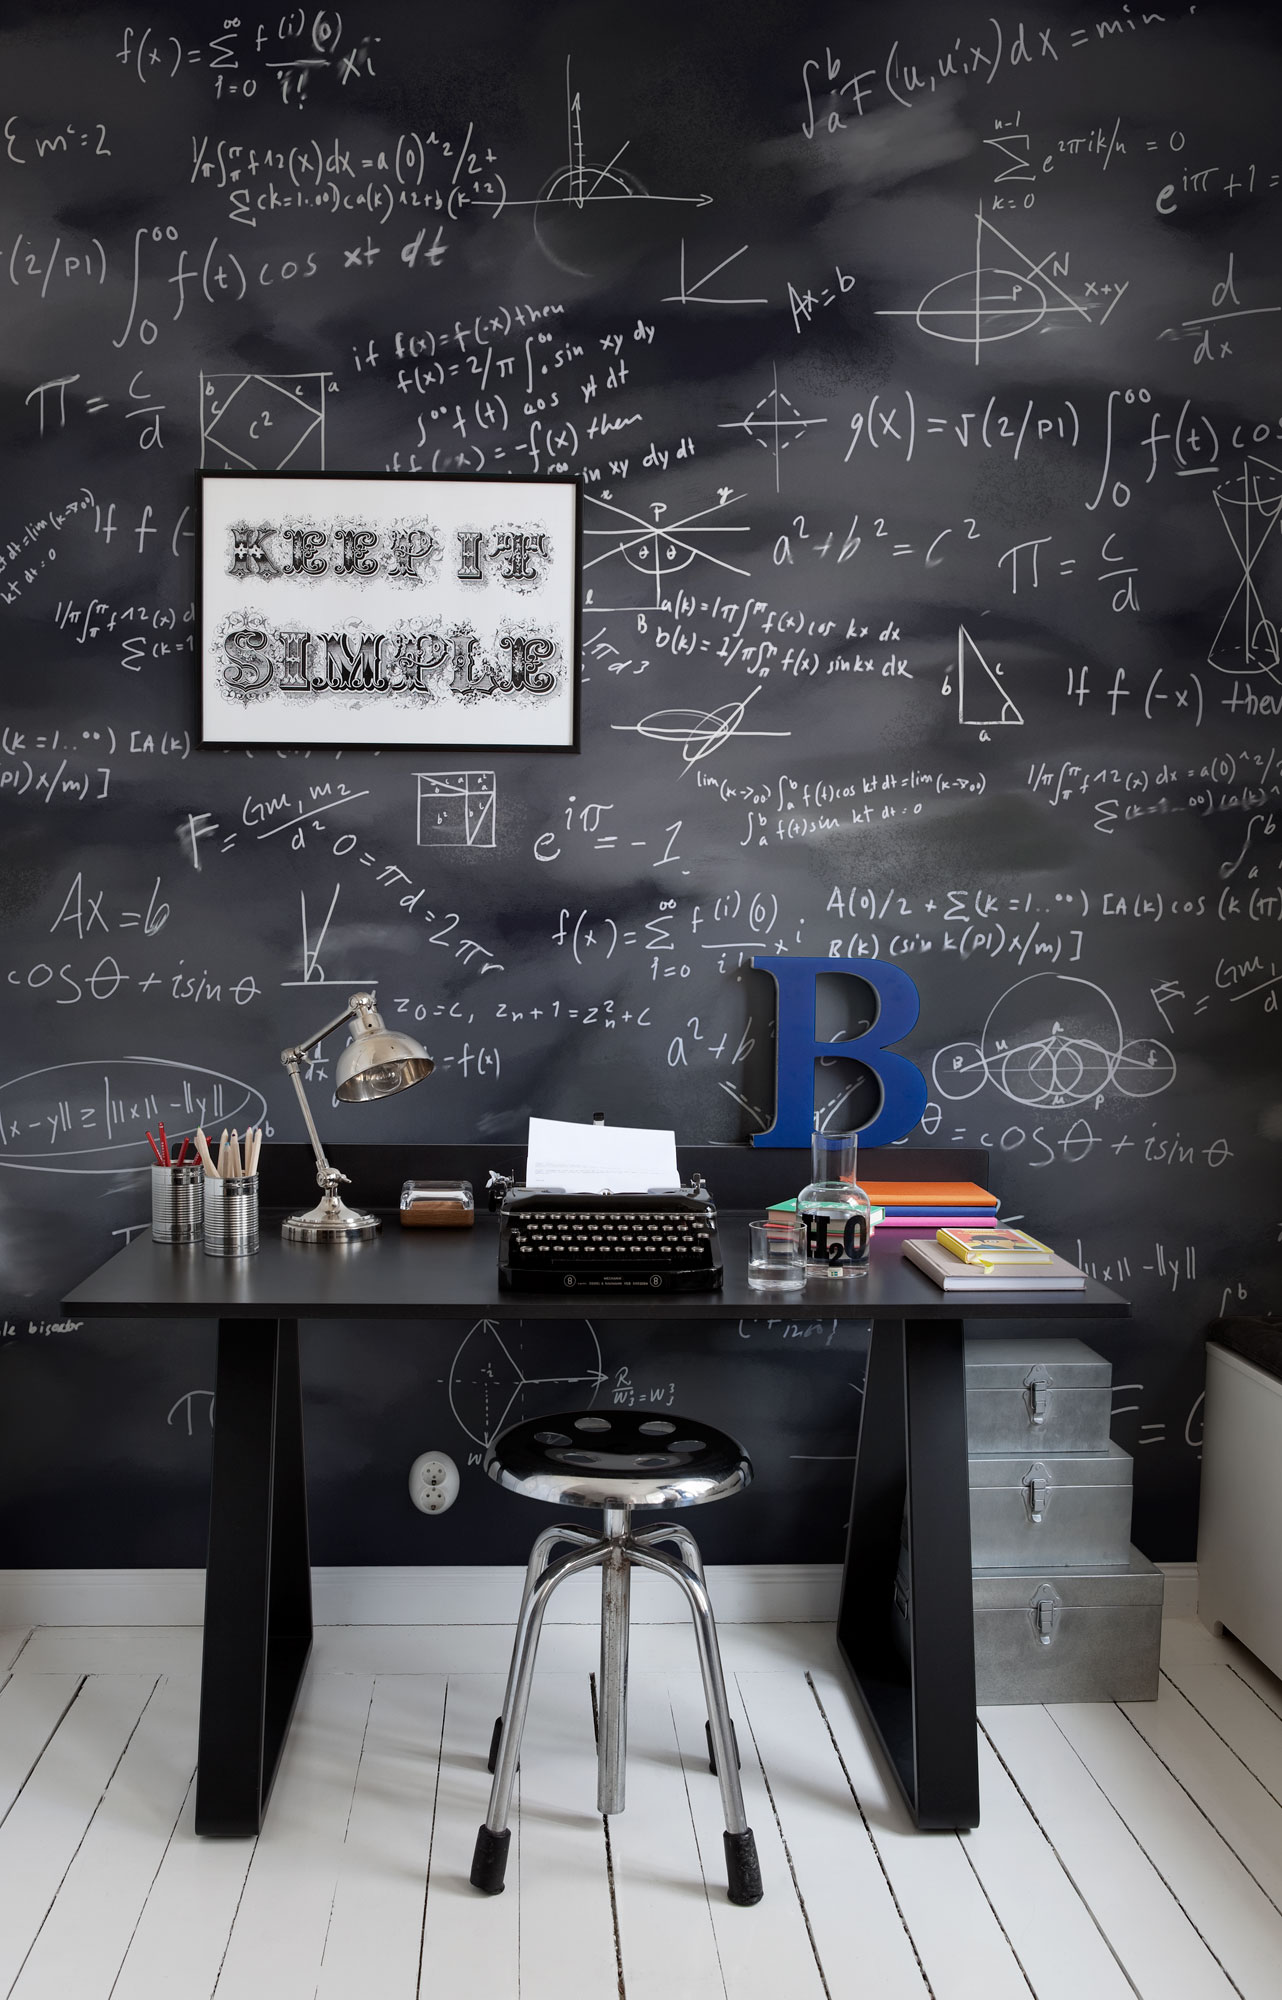 blackboard workspace wall 32 chalkboard decor ideas - Chalkboard Designs Ideas